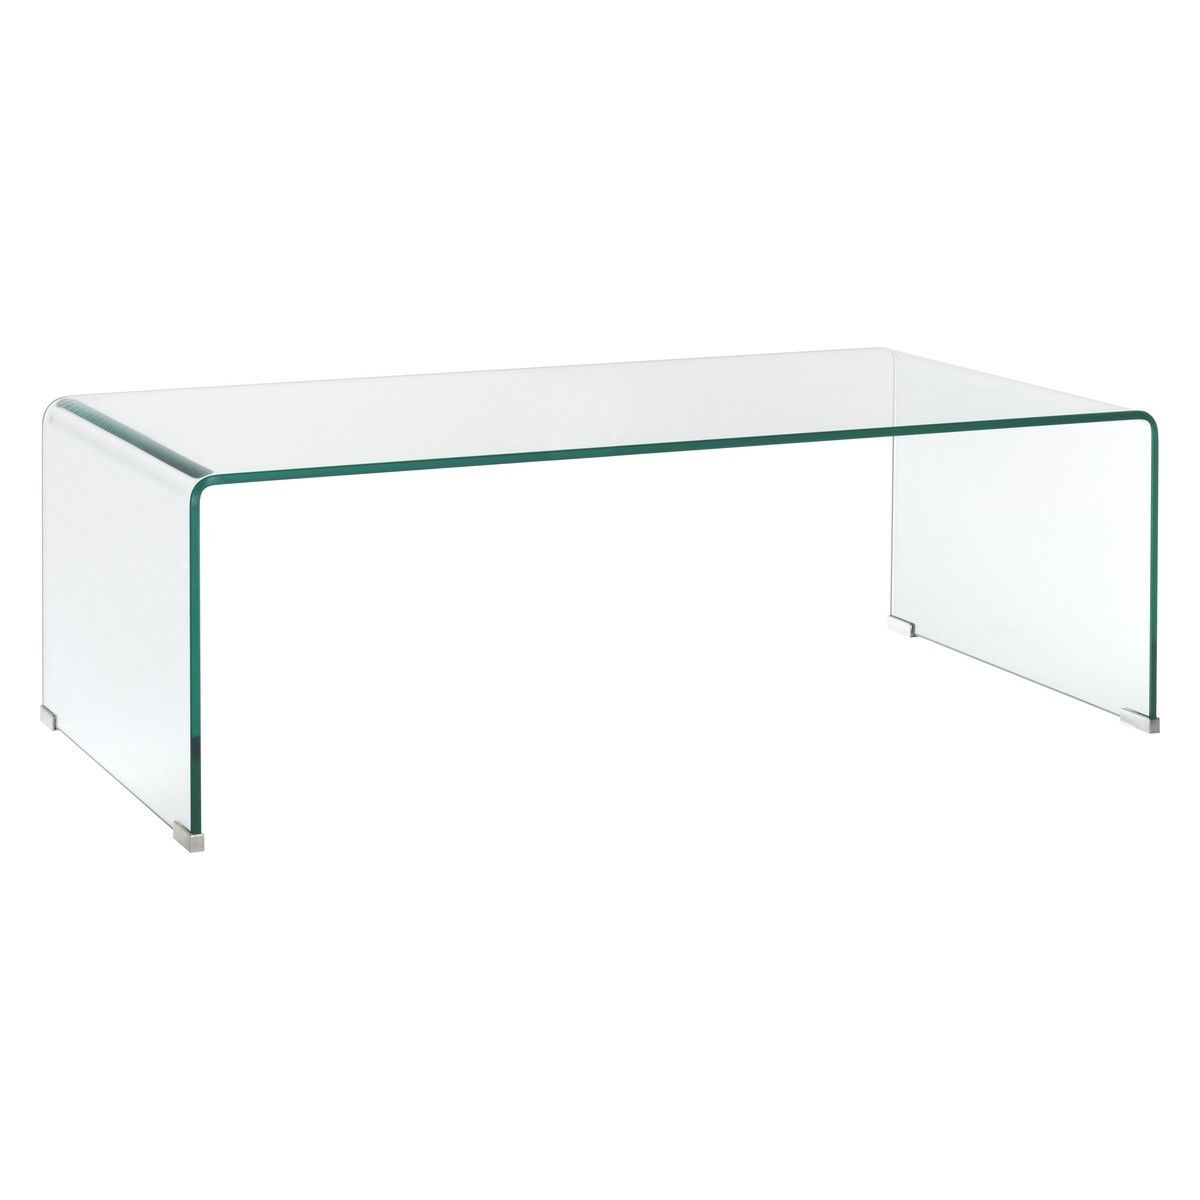 20 One Piece Glass Coffee Table Best Way to Paint Furniture Check